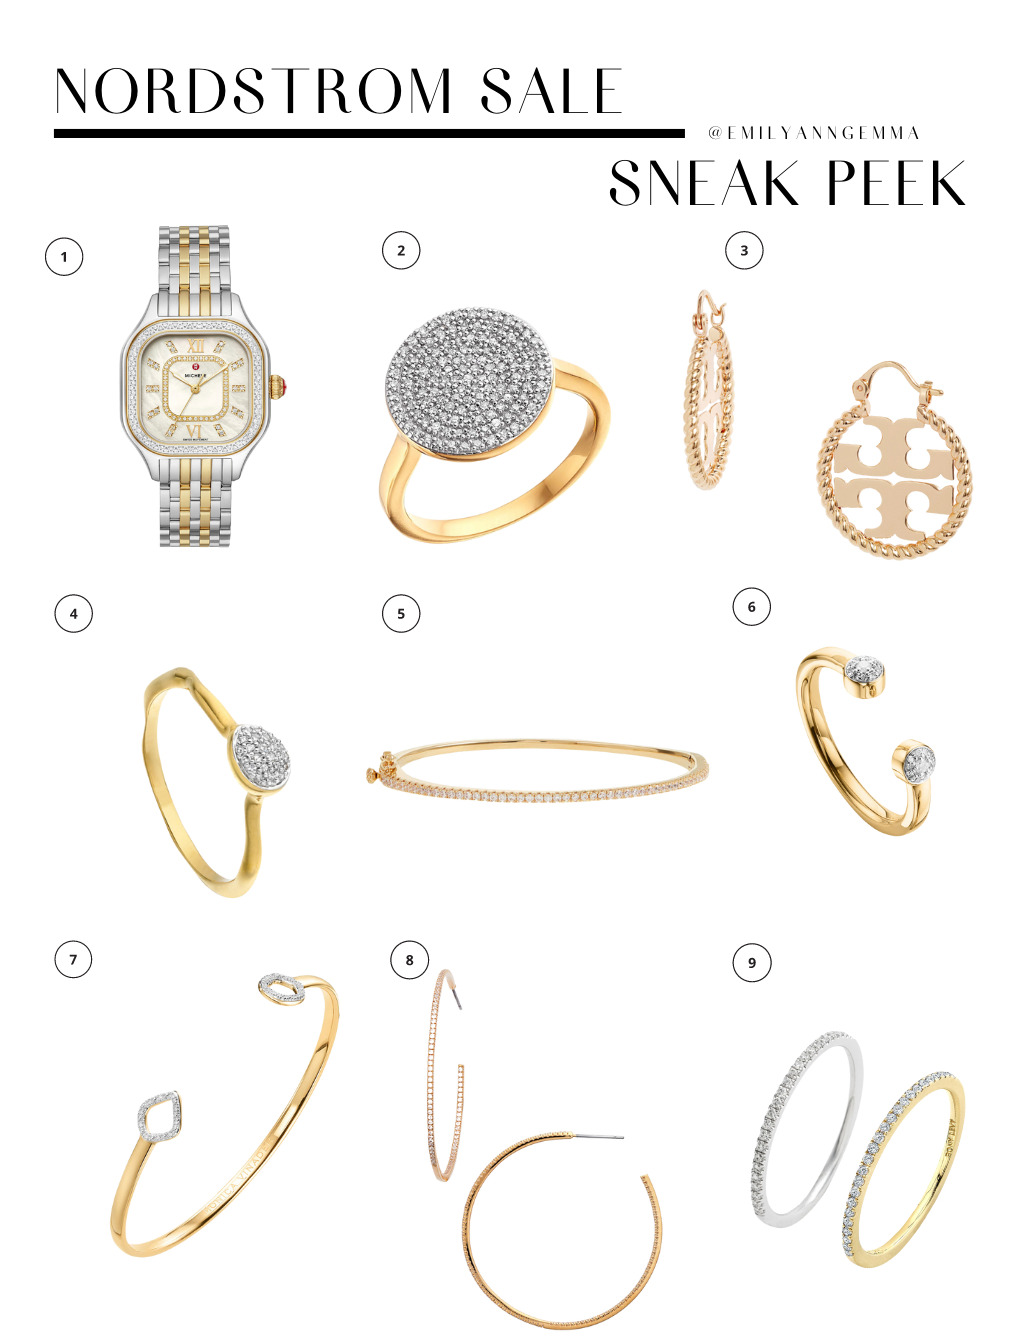 nsale 2021, nordstrom anniversary sale 2021, nSALE watch earrings bracelets and rings, must have blog posts nordstrom sale 2021, Emily Ann Gemma, the sweetest thing blog, Nordstrom Anniversary Sale by popular US fashion blog | Nordstrom Anniversary Sale by popular US fashion blog, The Sweetest Thing: collage image of a watch, Tory Burch hoop earrings, gold hoop earrings, diamond disc ring, diamond stacking rings, CZ bangle, and diamond cuff.